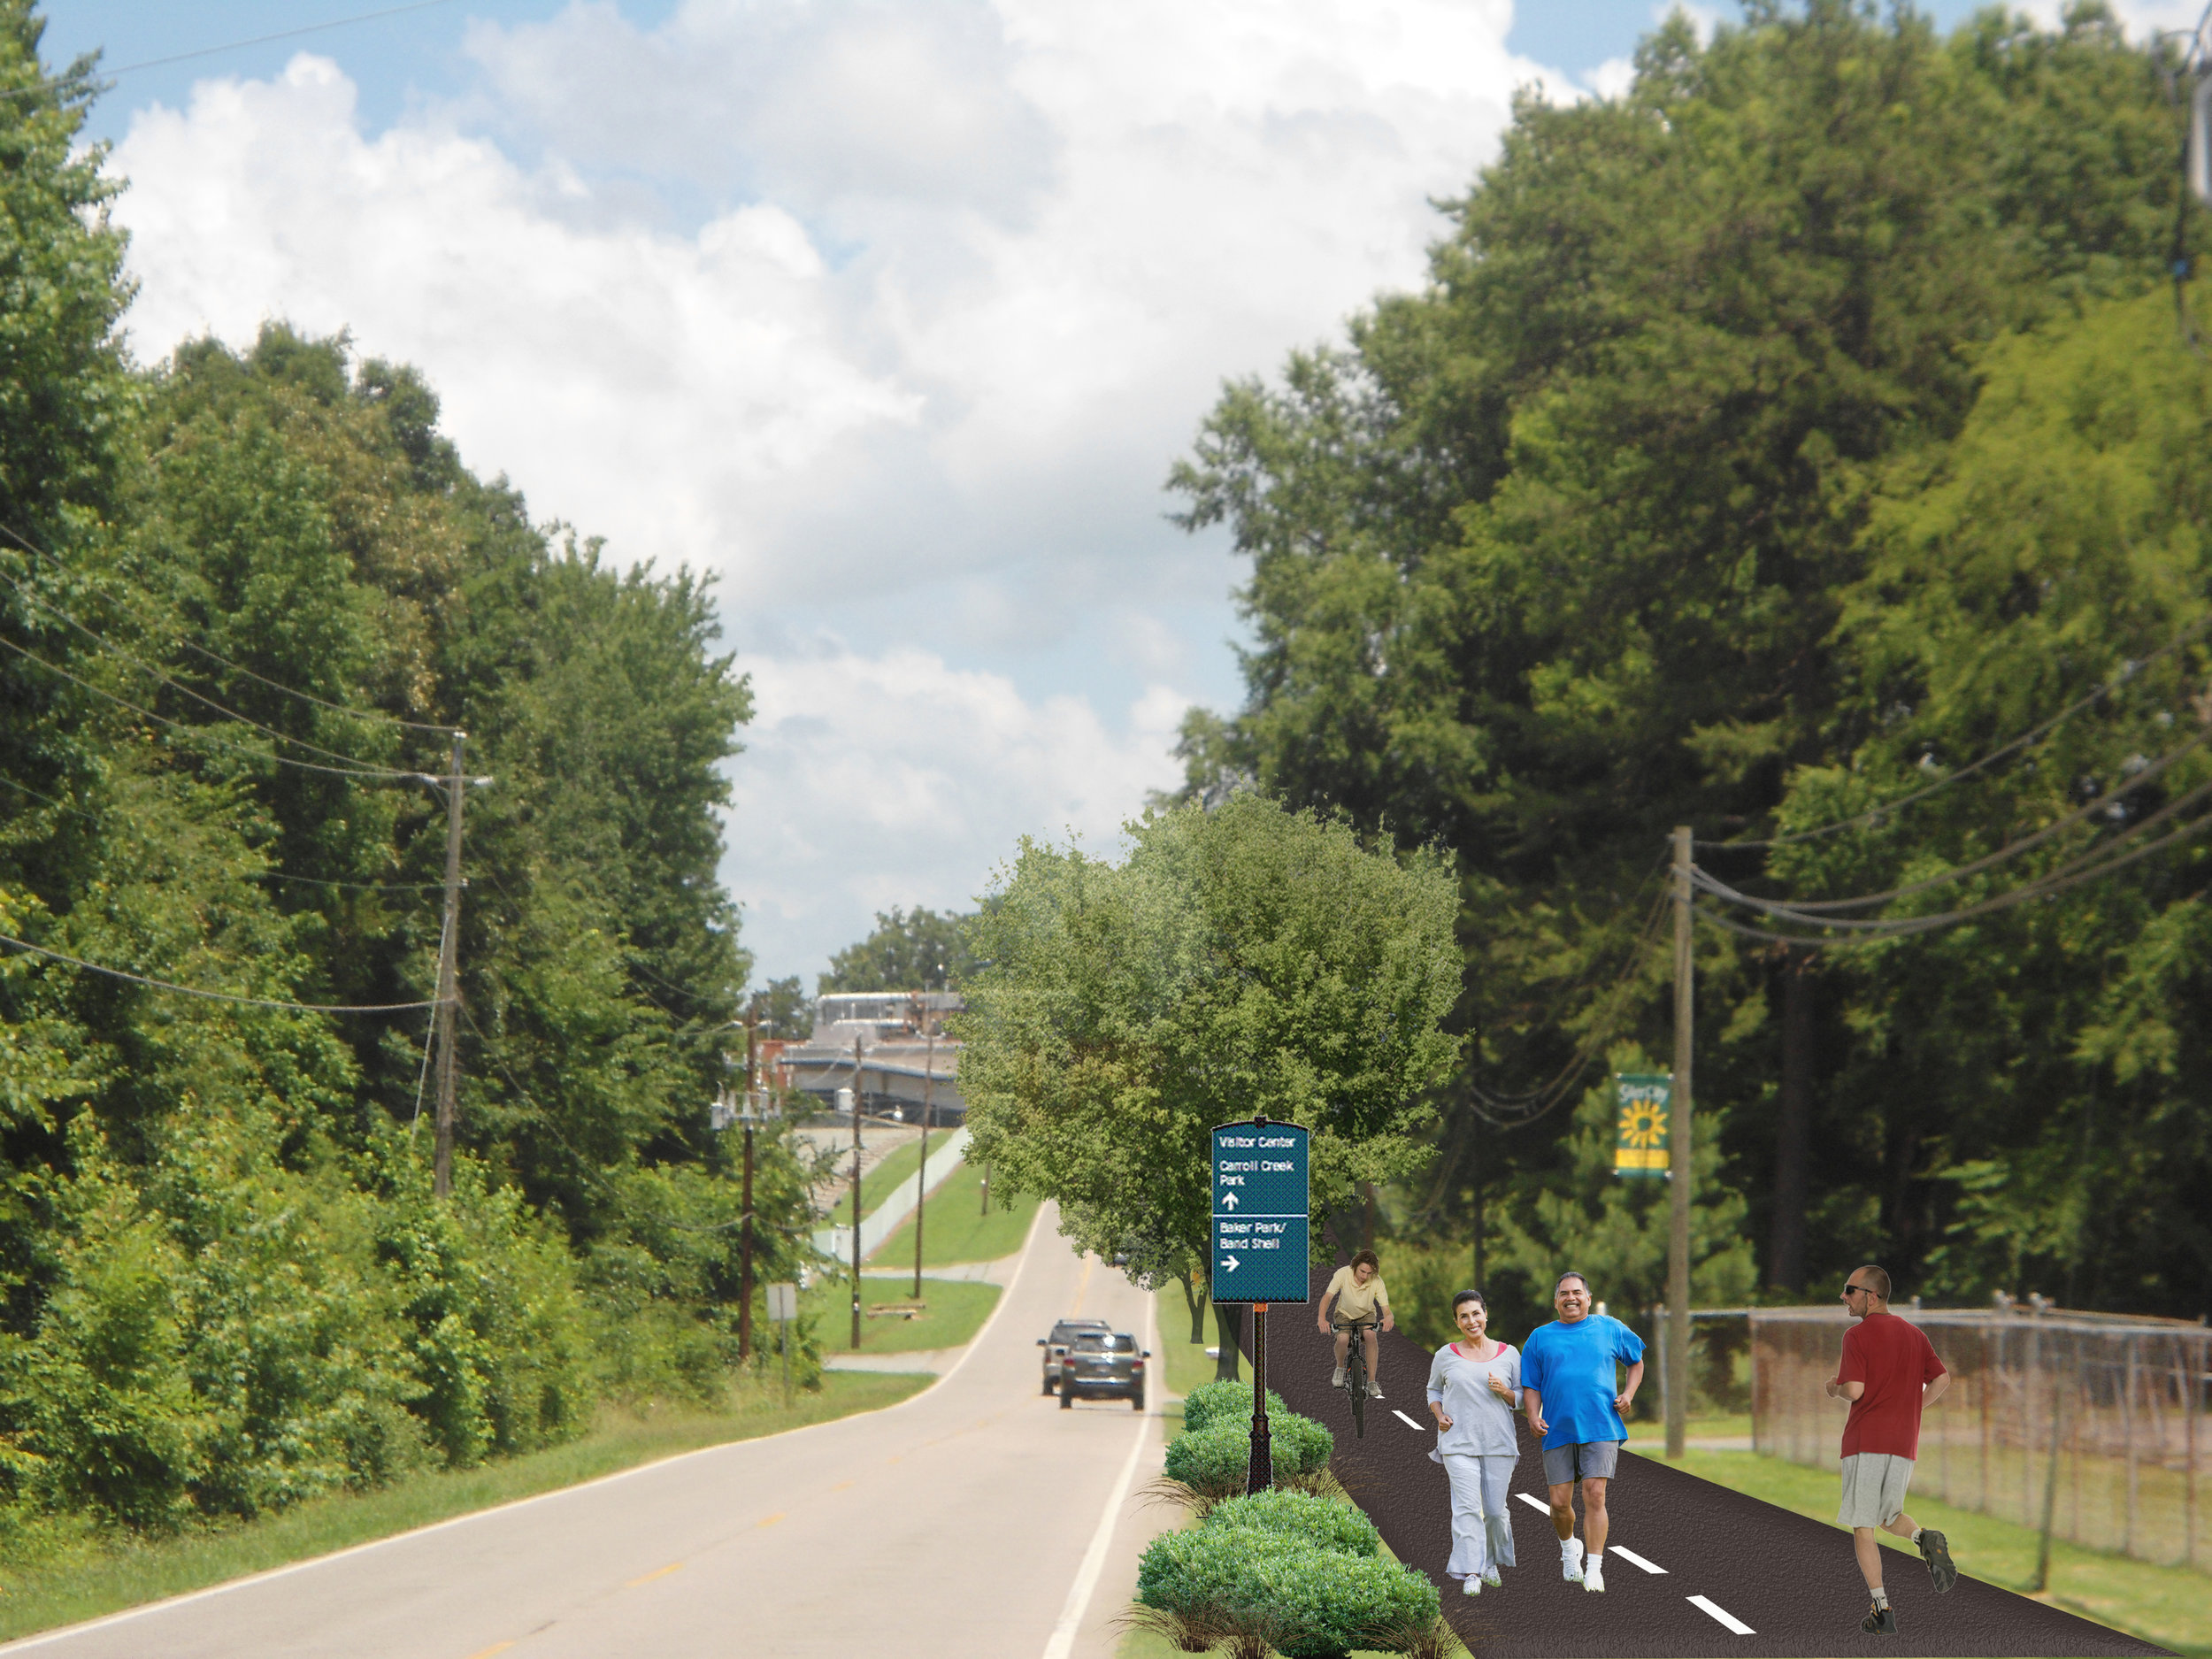 East Raleigh Street Proposed Multi-Use Plan